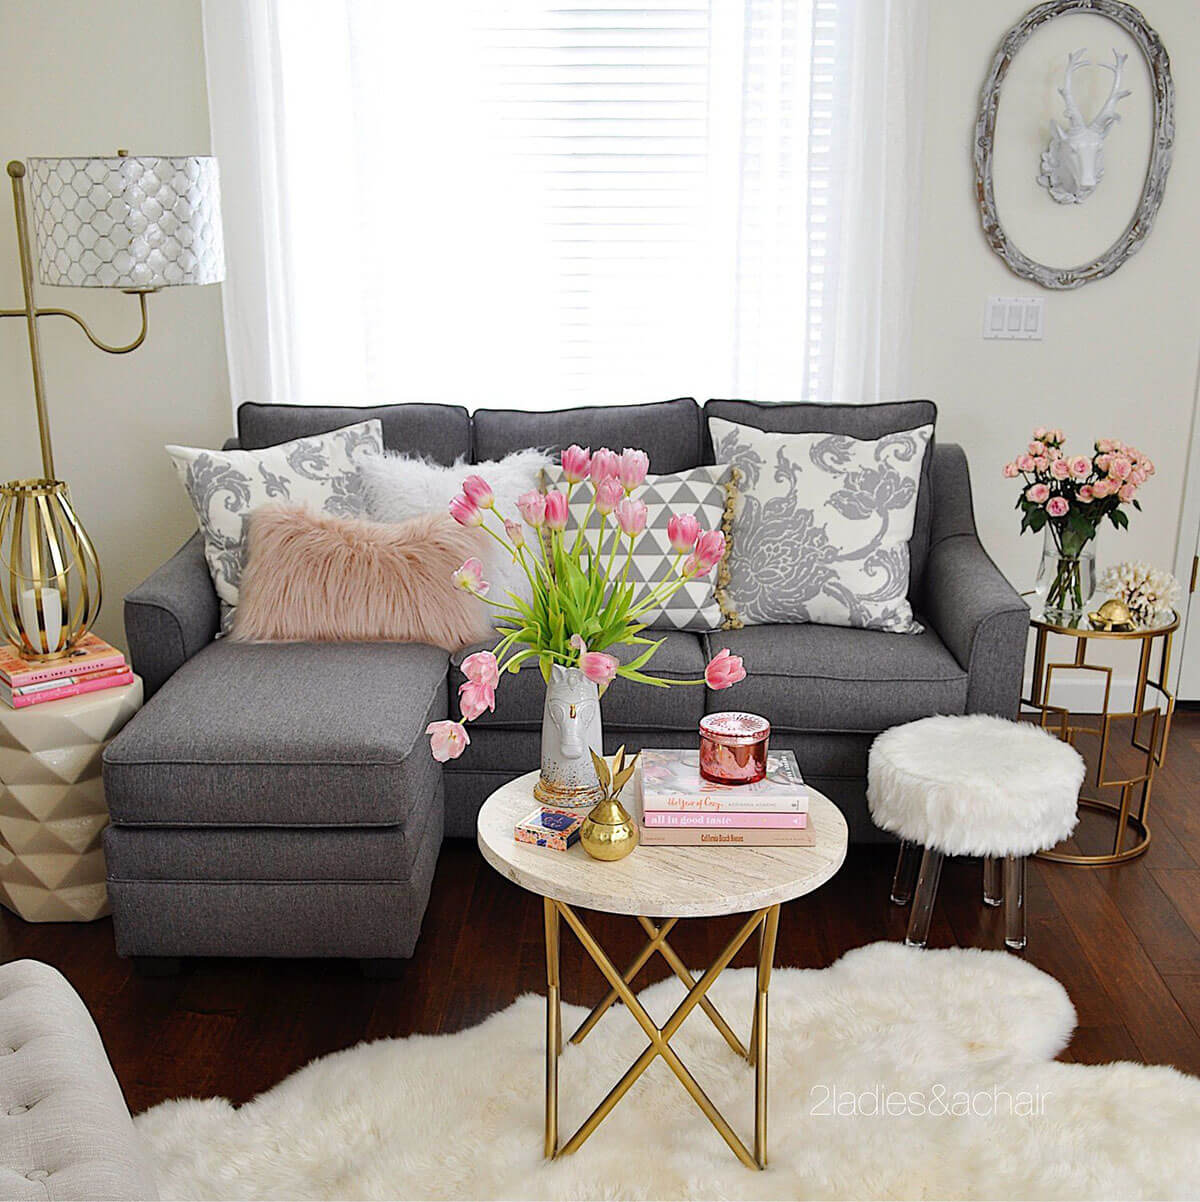 25 Best Small Living Room Decor And Design Ideas For 2019